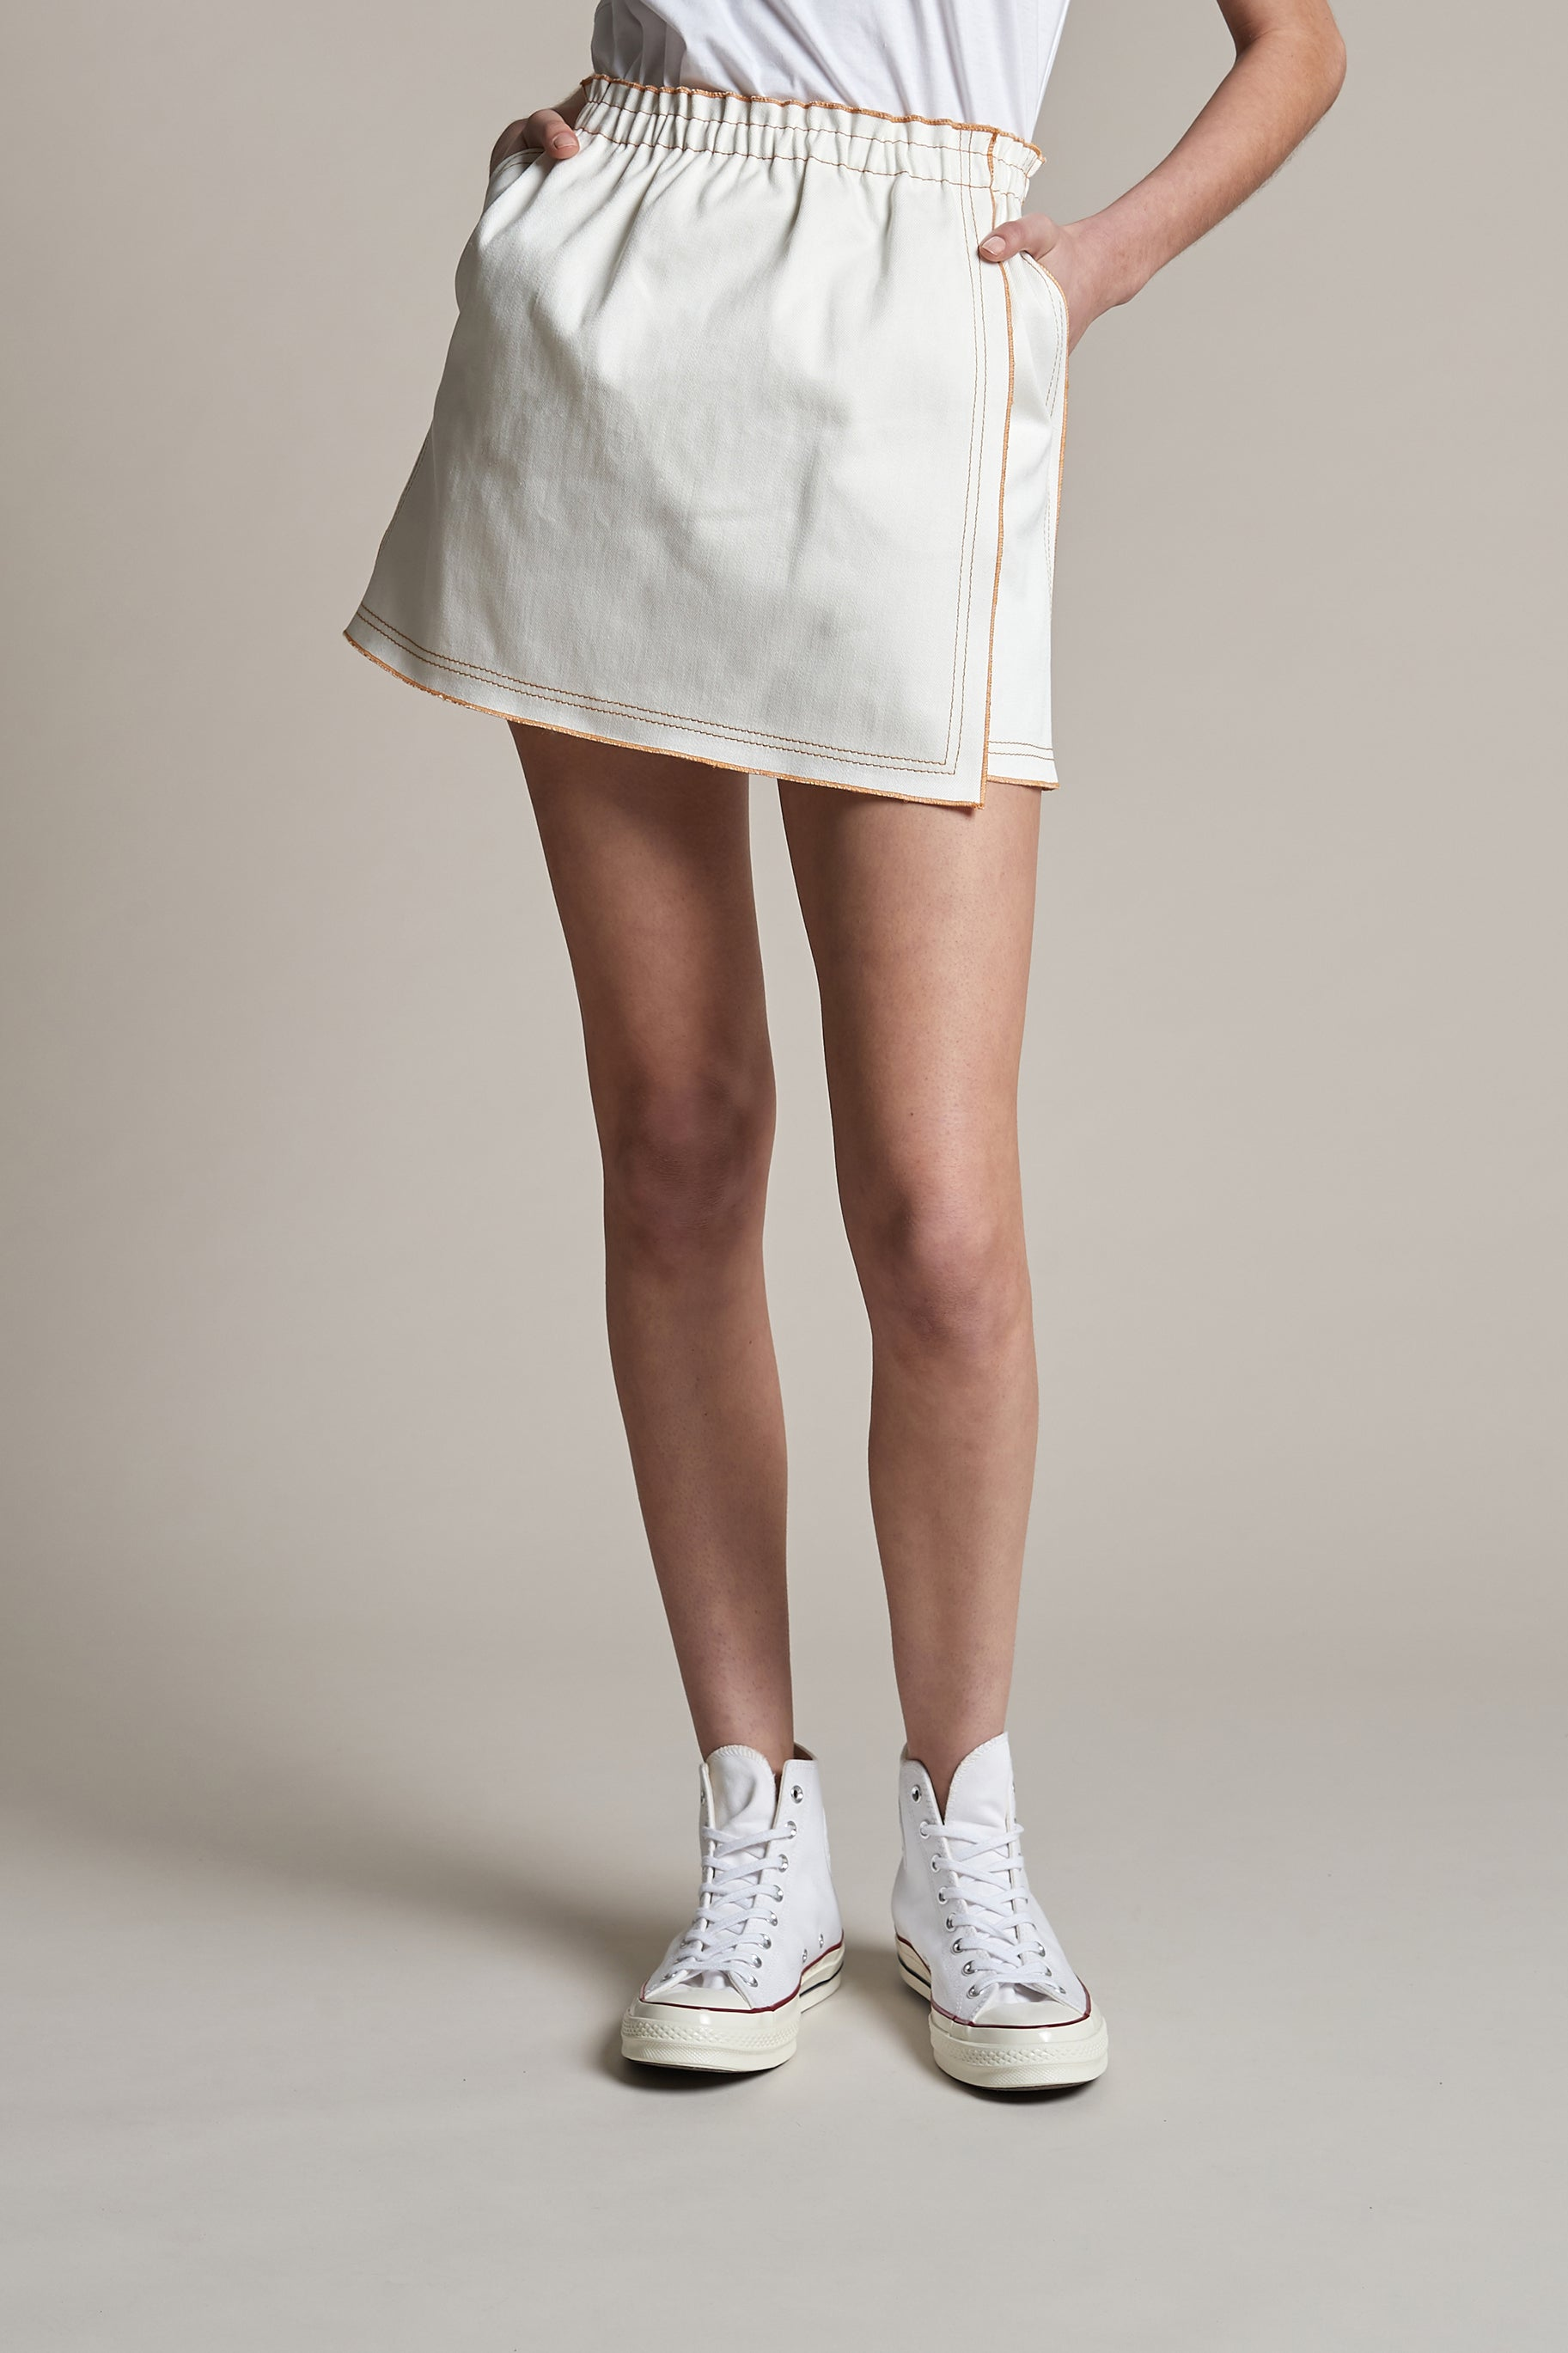 Woman wearing white denim mini skirt from outland denim x karen walker collaboration